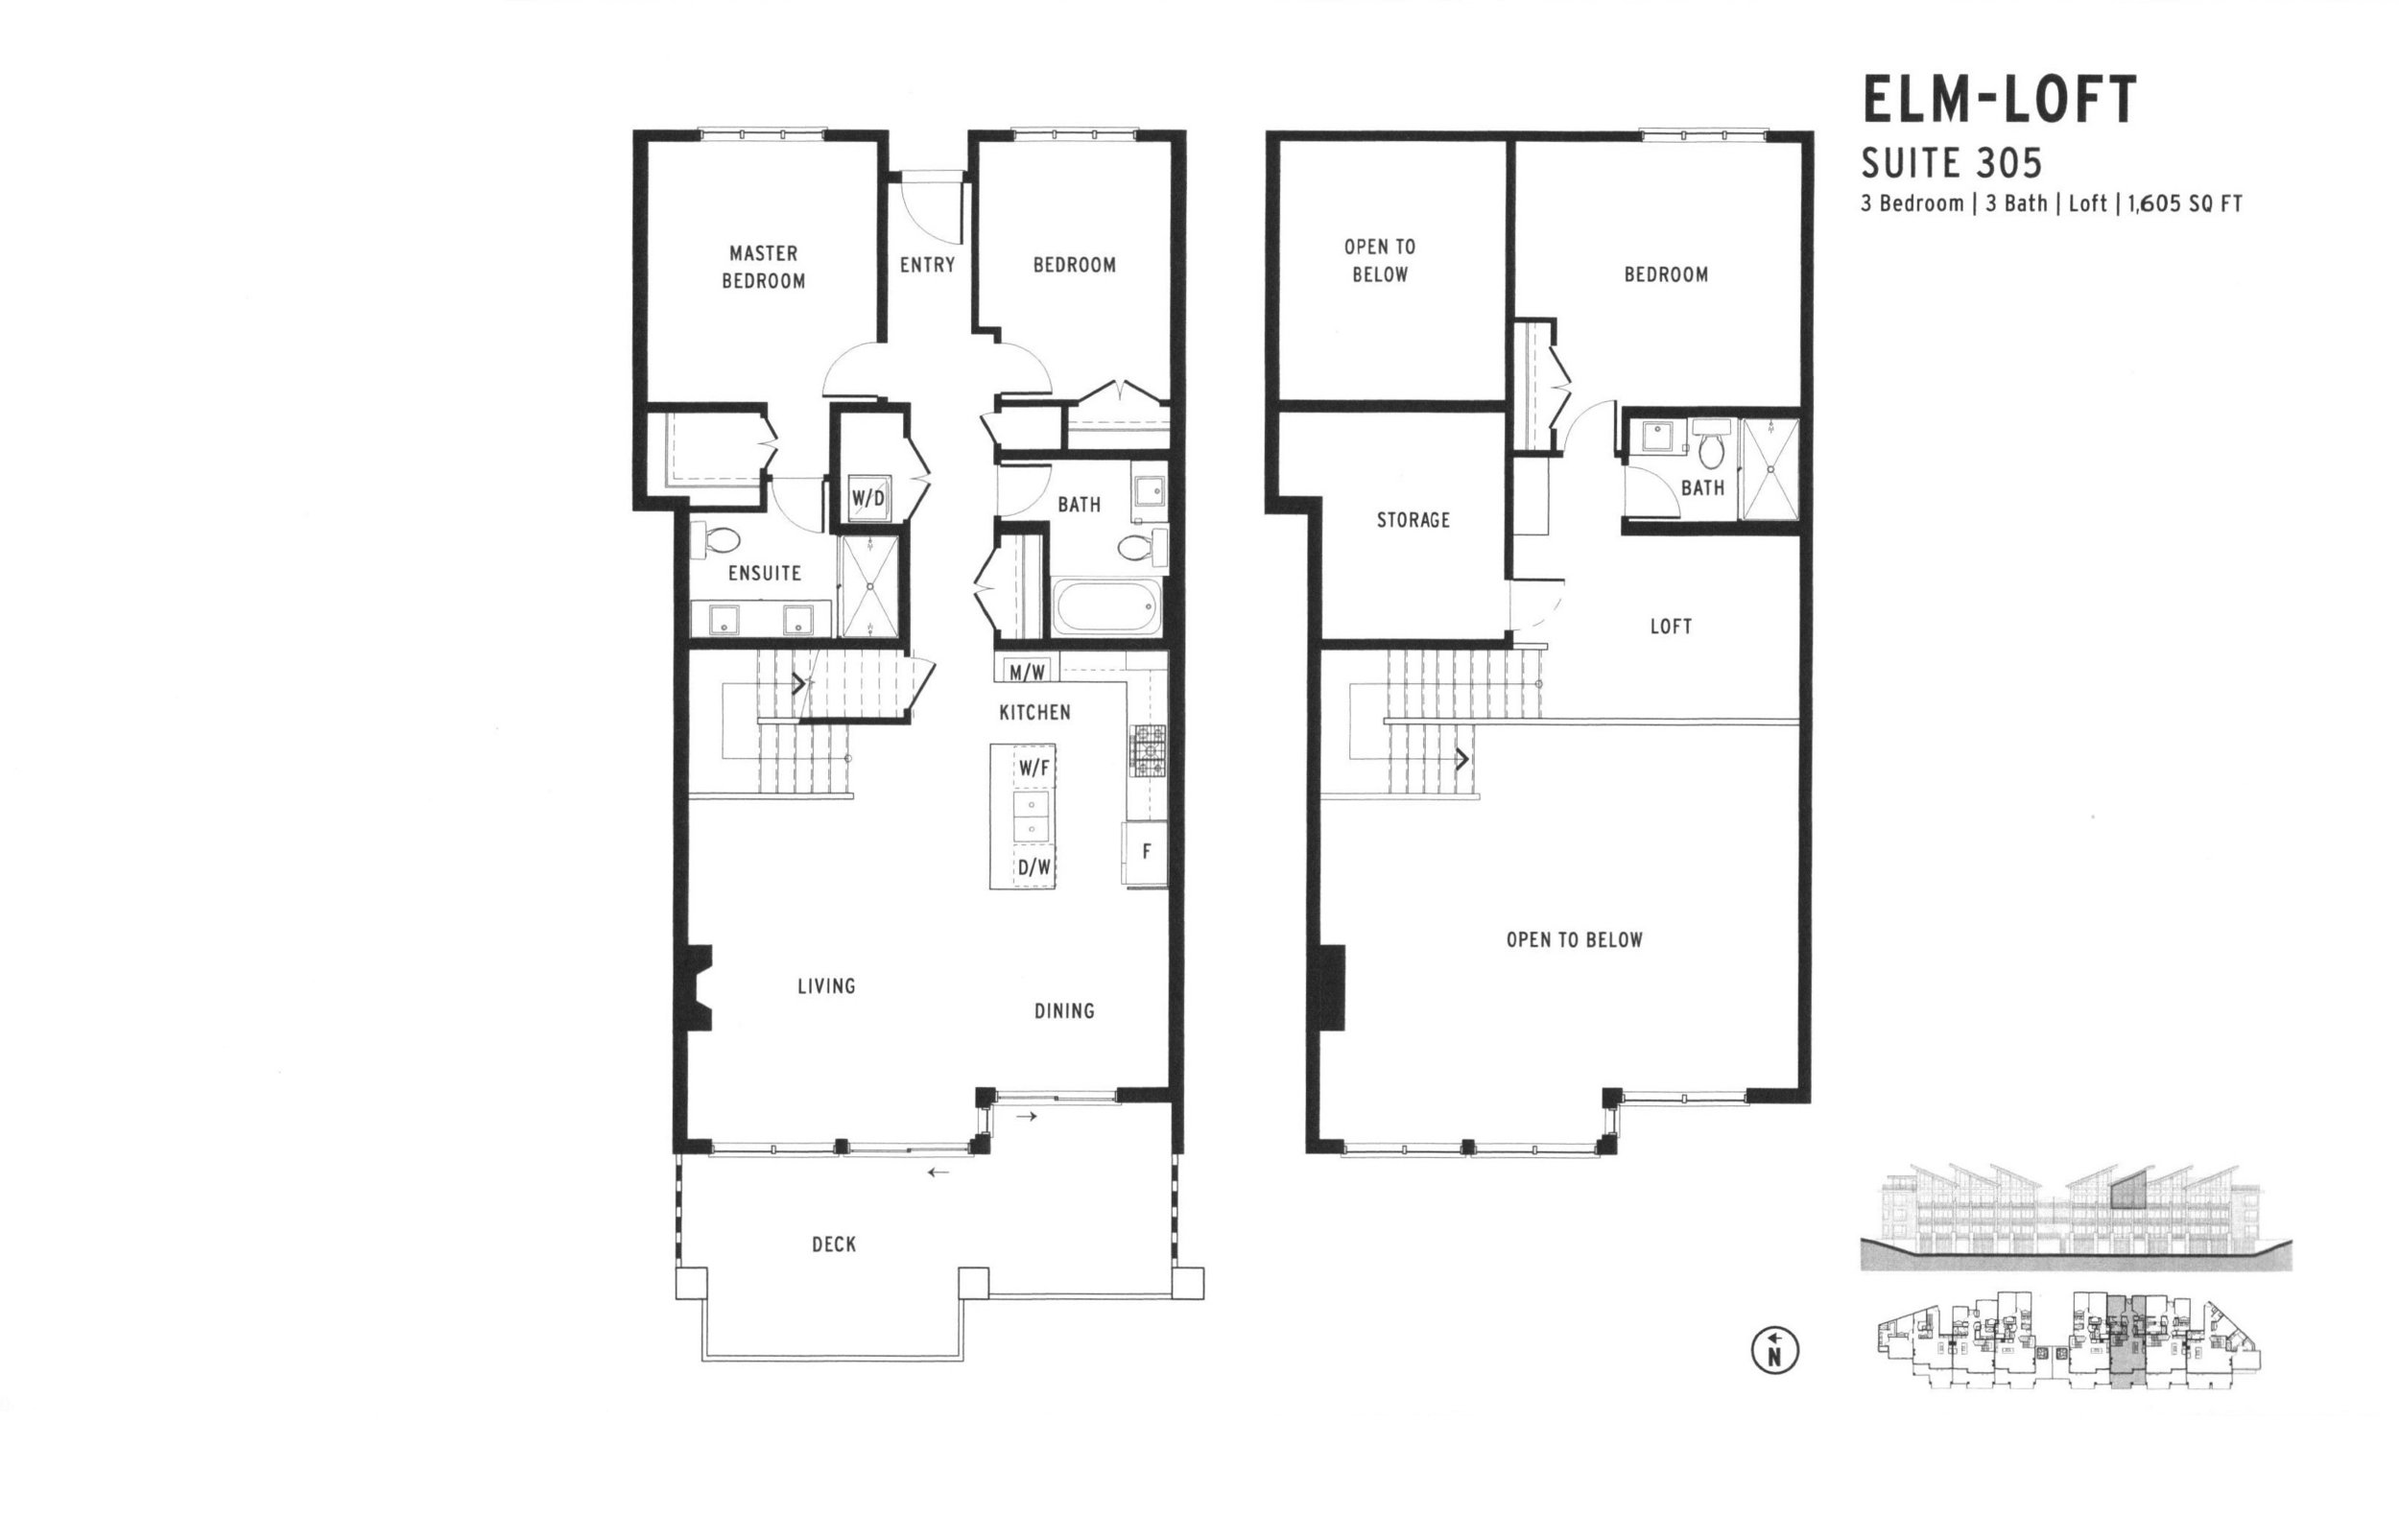 Copy of 305 - ELM-LOFT - $ 1,599,900